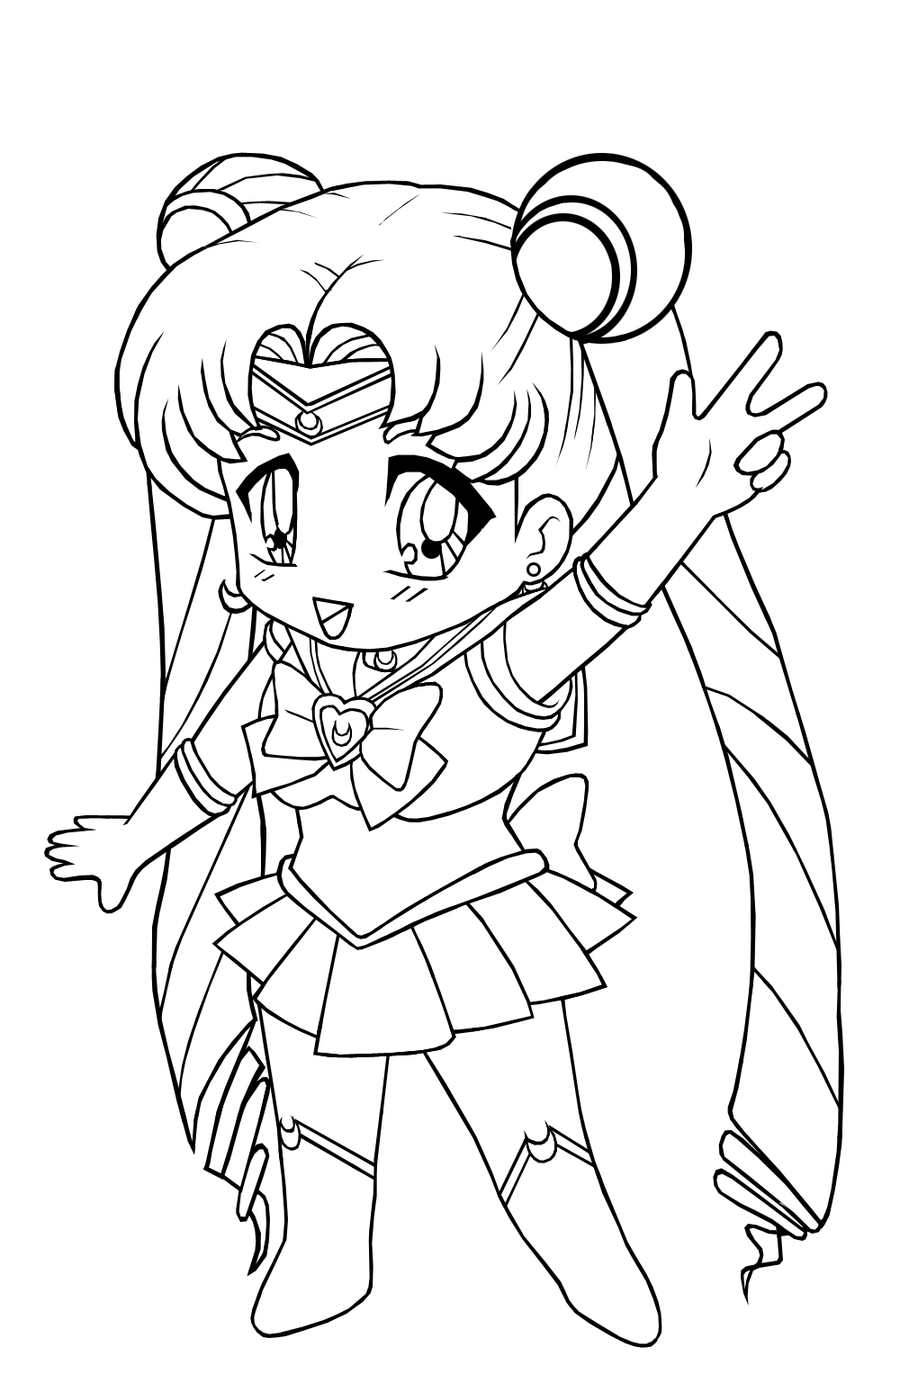 anime coloring sheet anime characters coloring pages at getcoloringscom free coloring sheet anime